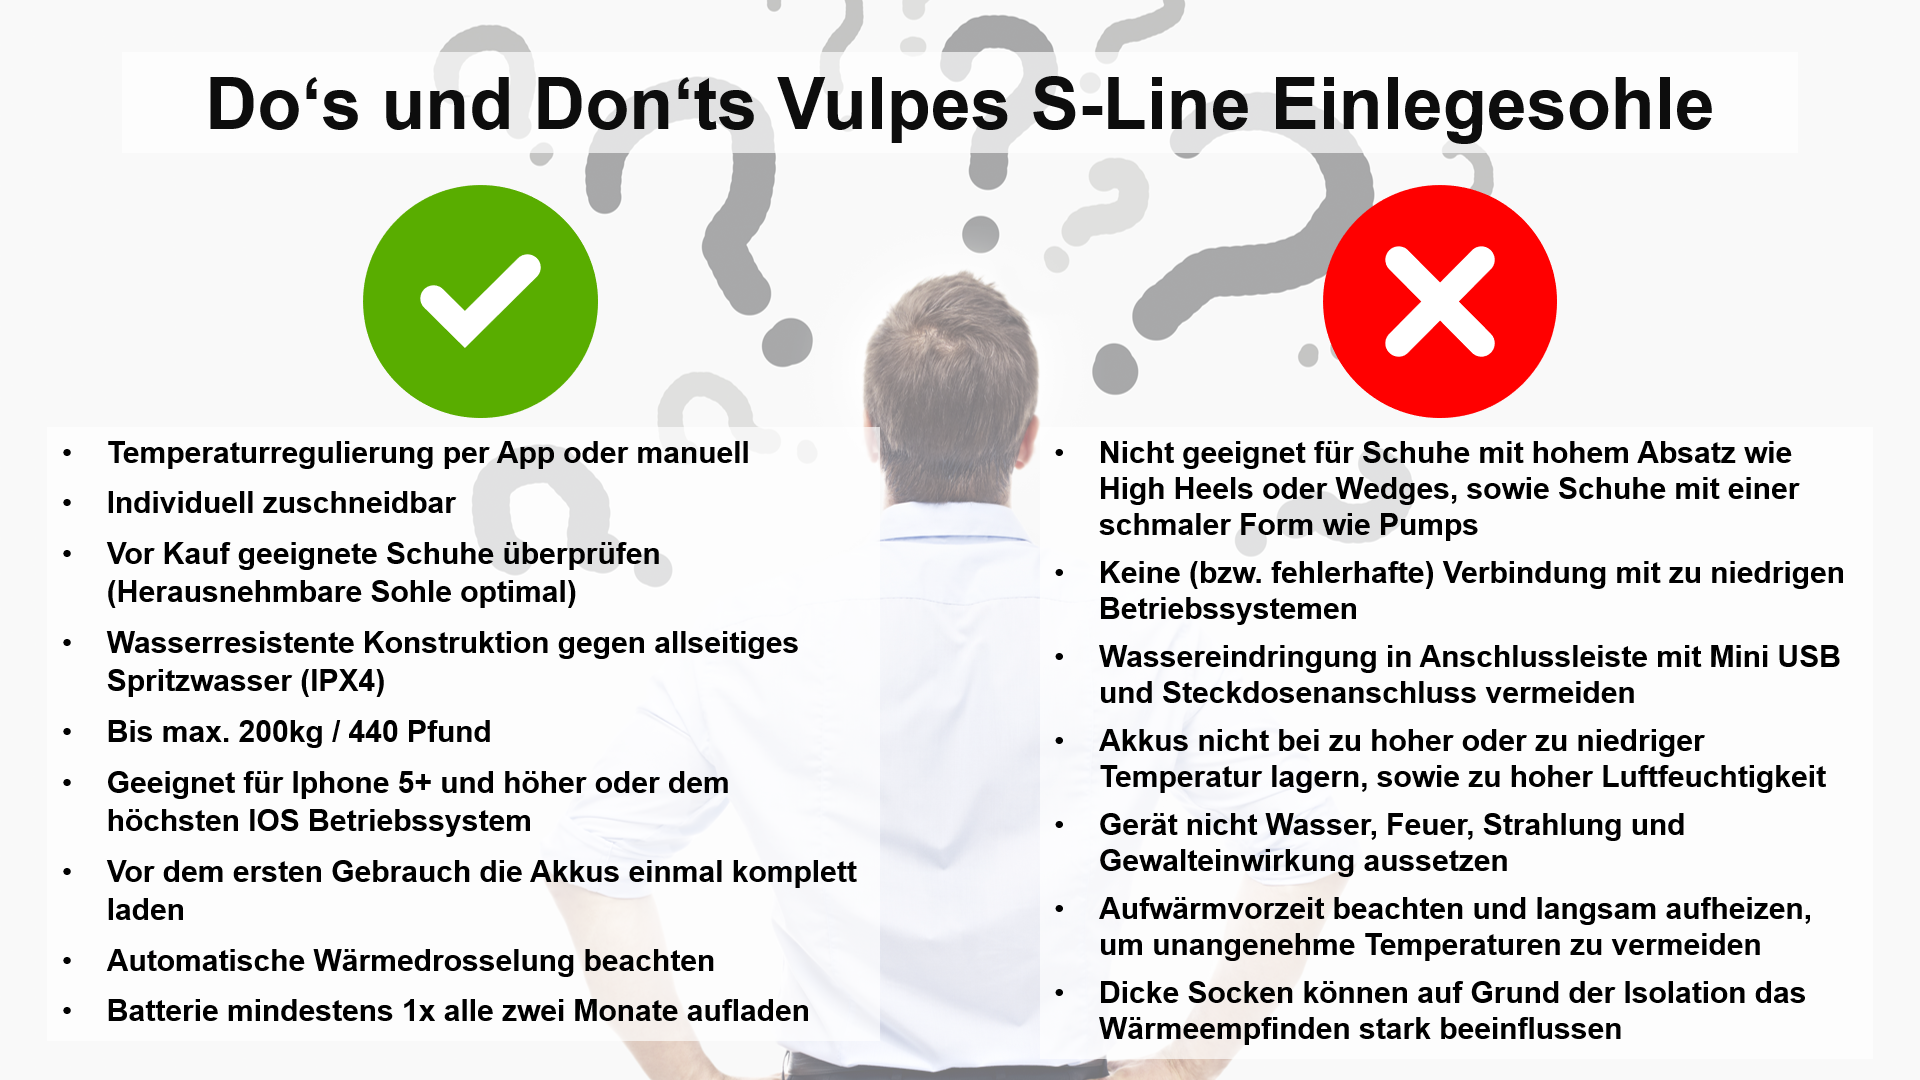 Do's und Don'ts Vulpes S-Line